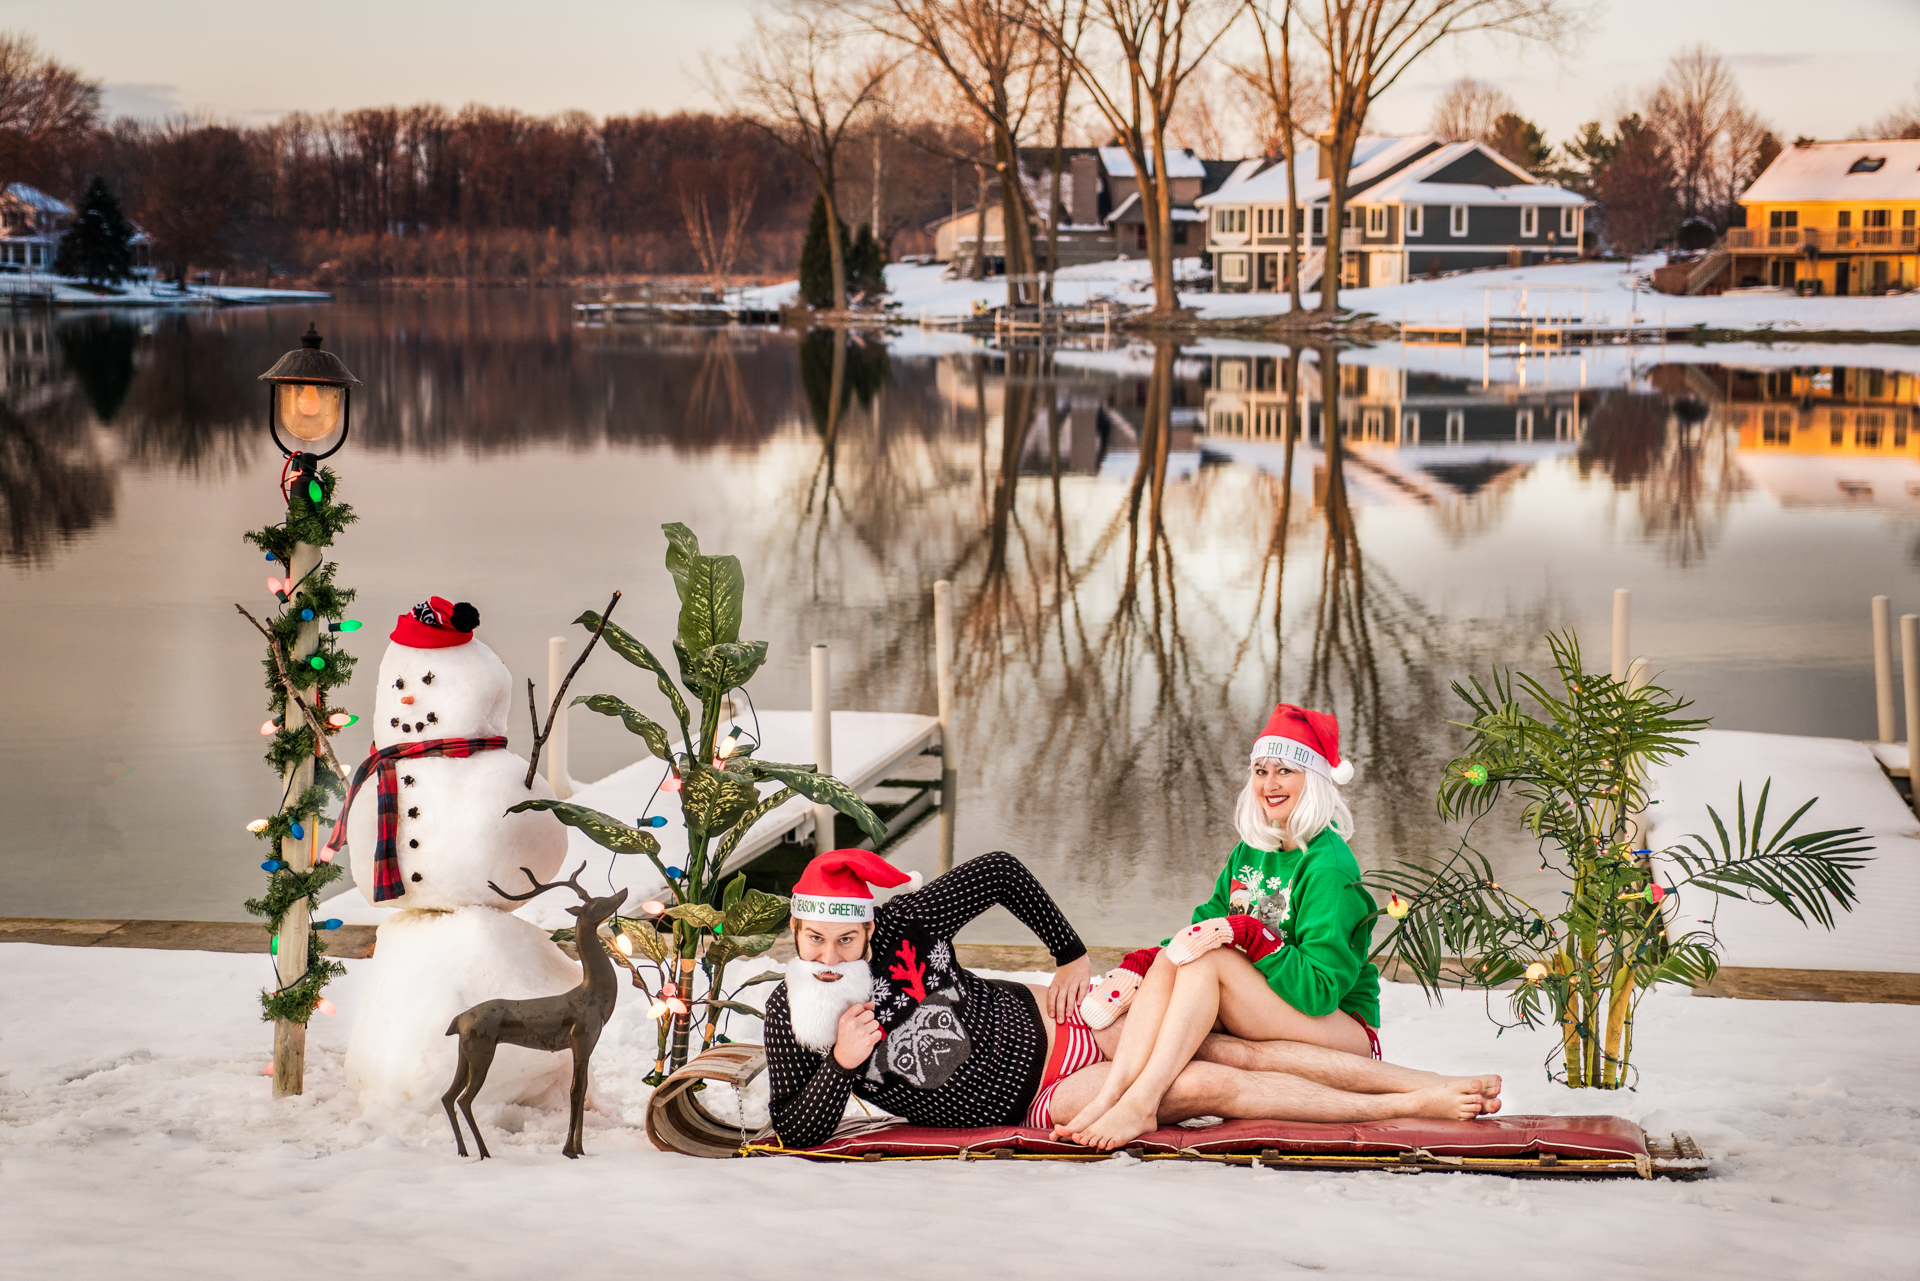 Shooting our Christmas Card: Part 2. (All of the props are staged/ scenery is not photoshopped)